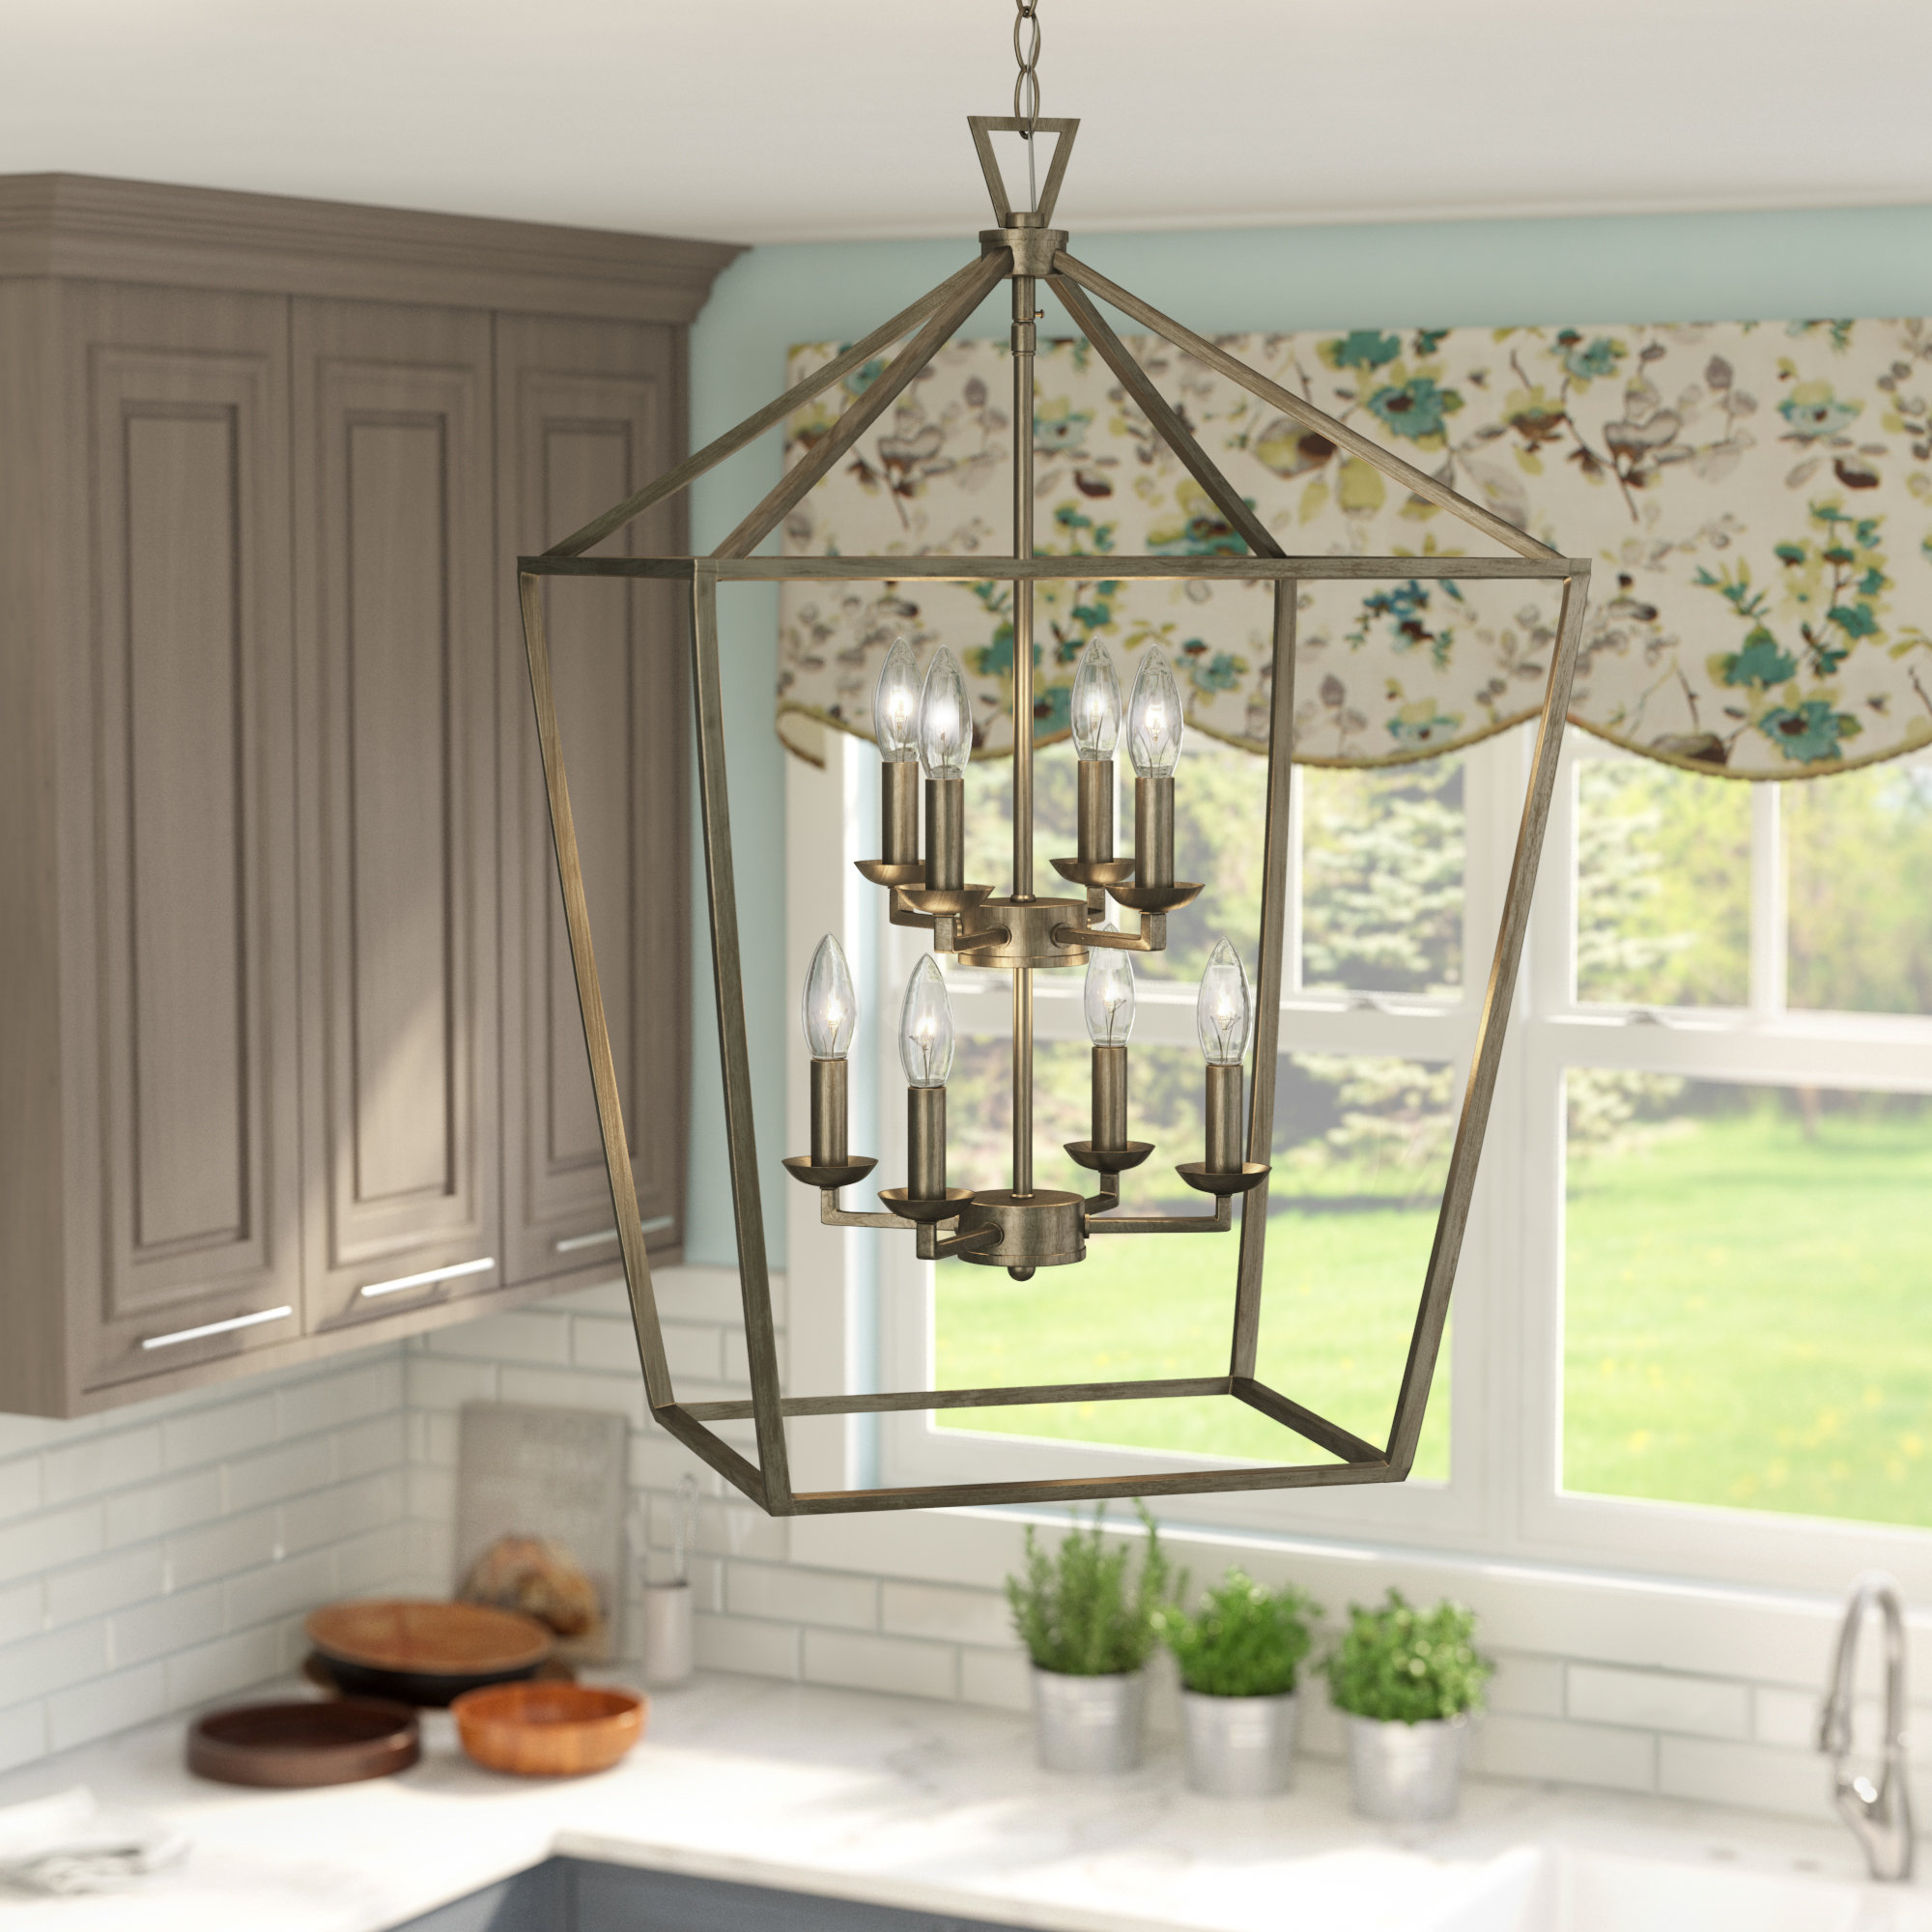 Newest Small Lantern Pendant Light You'll Love In  (View 22 of 25)